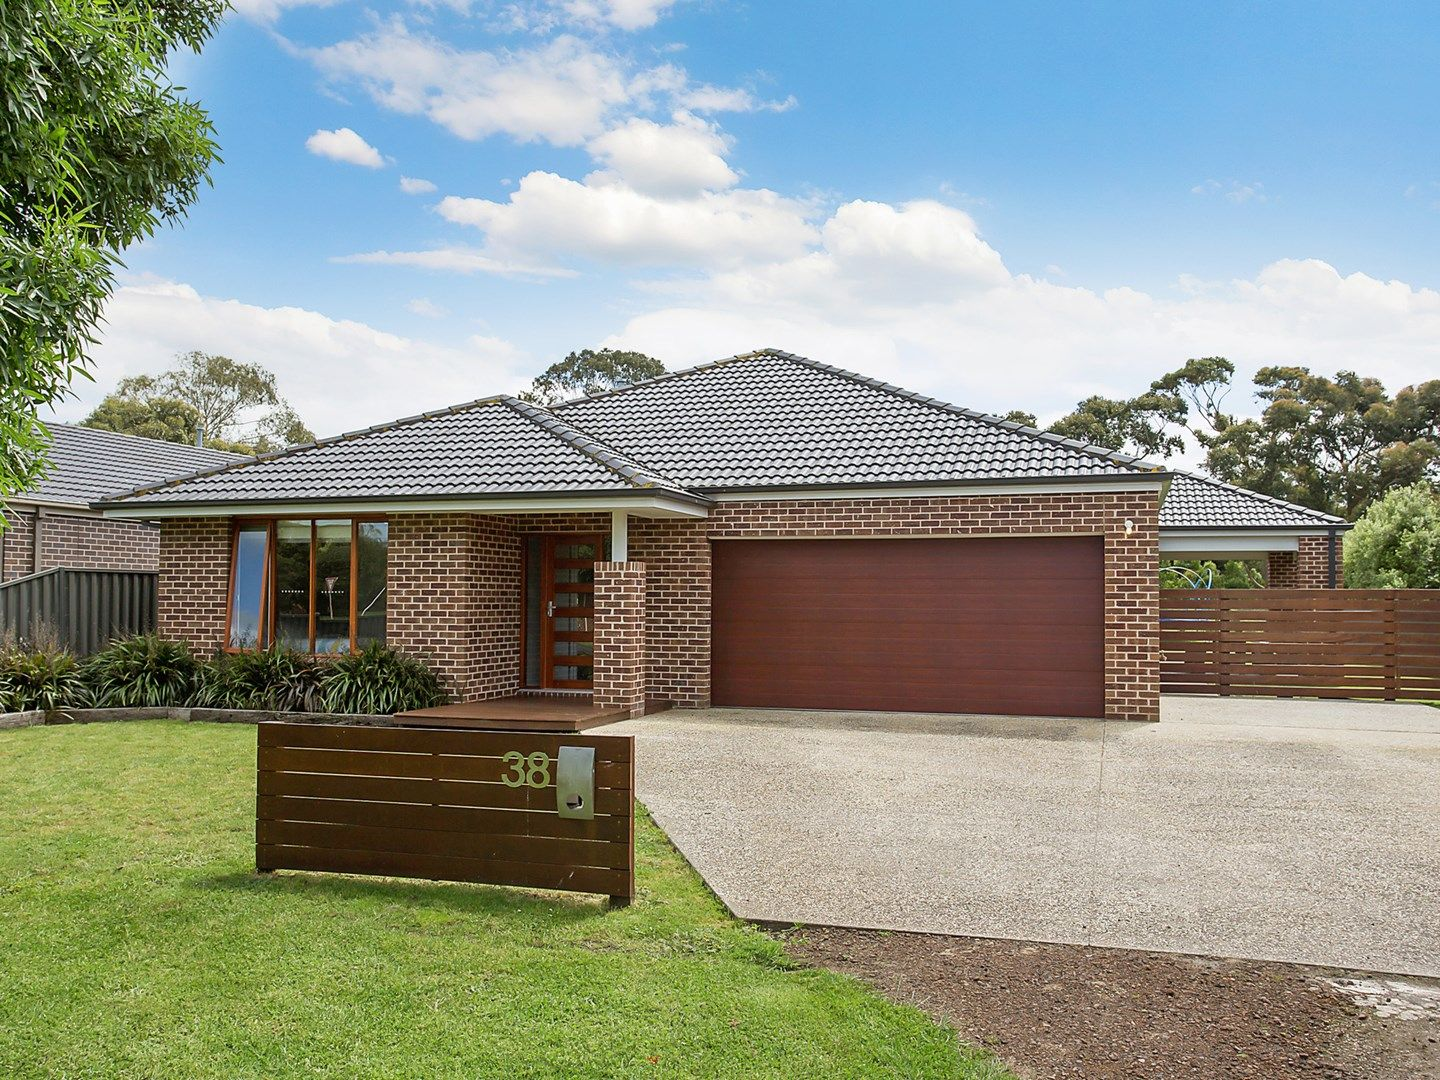 38 Shenfield Street, Cobden VIC 3266, Image 0